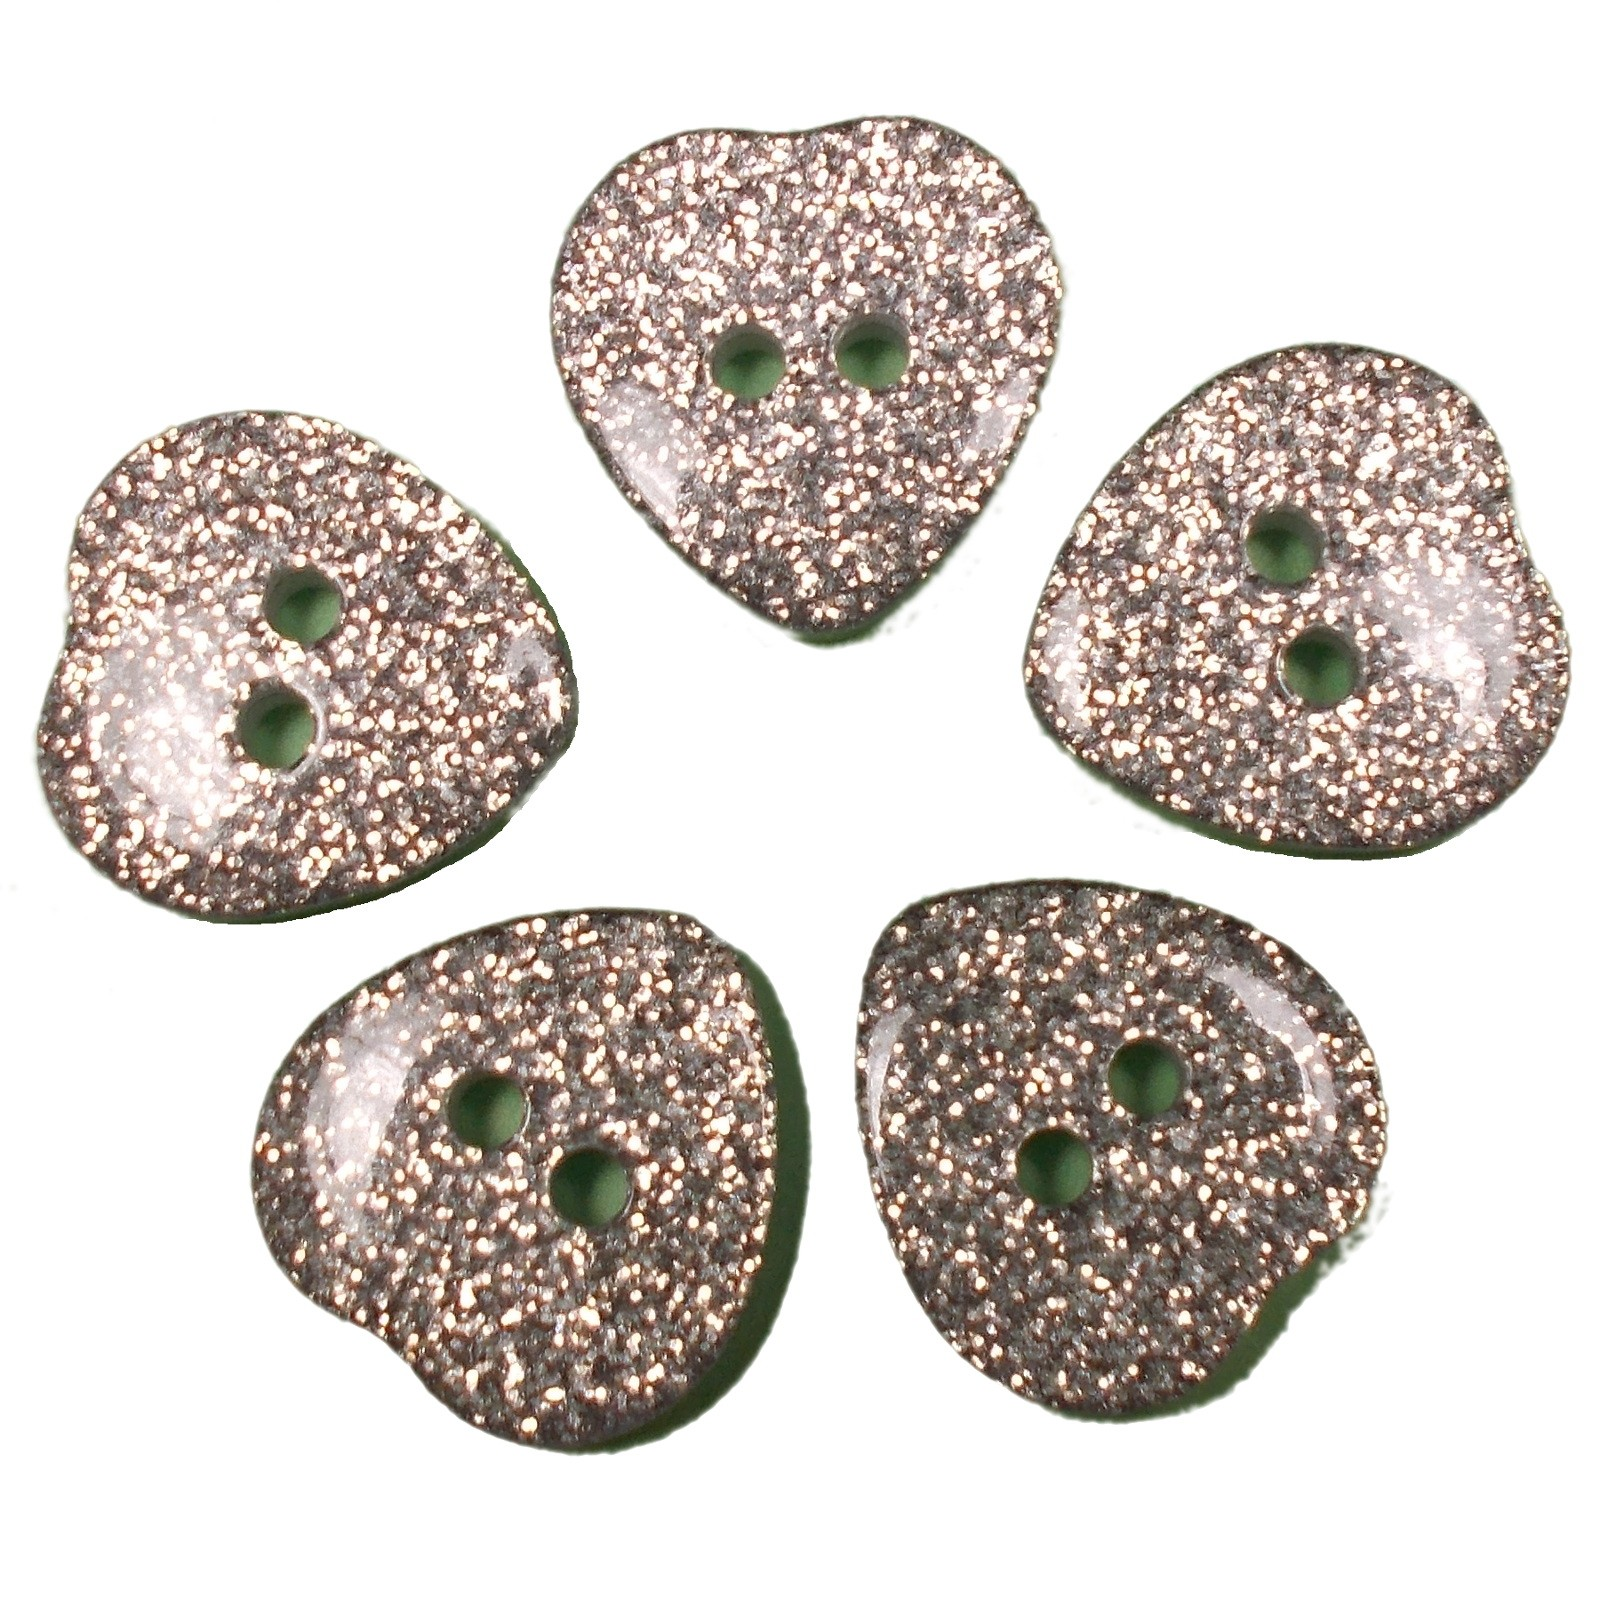 Colour Glitter Heart Shape Buttons 9mm Silver Pack of 5